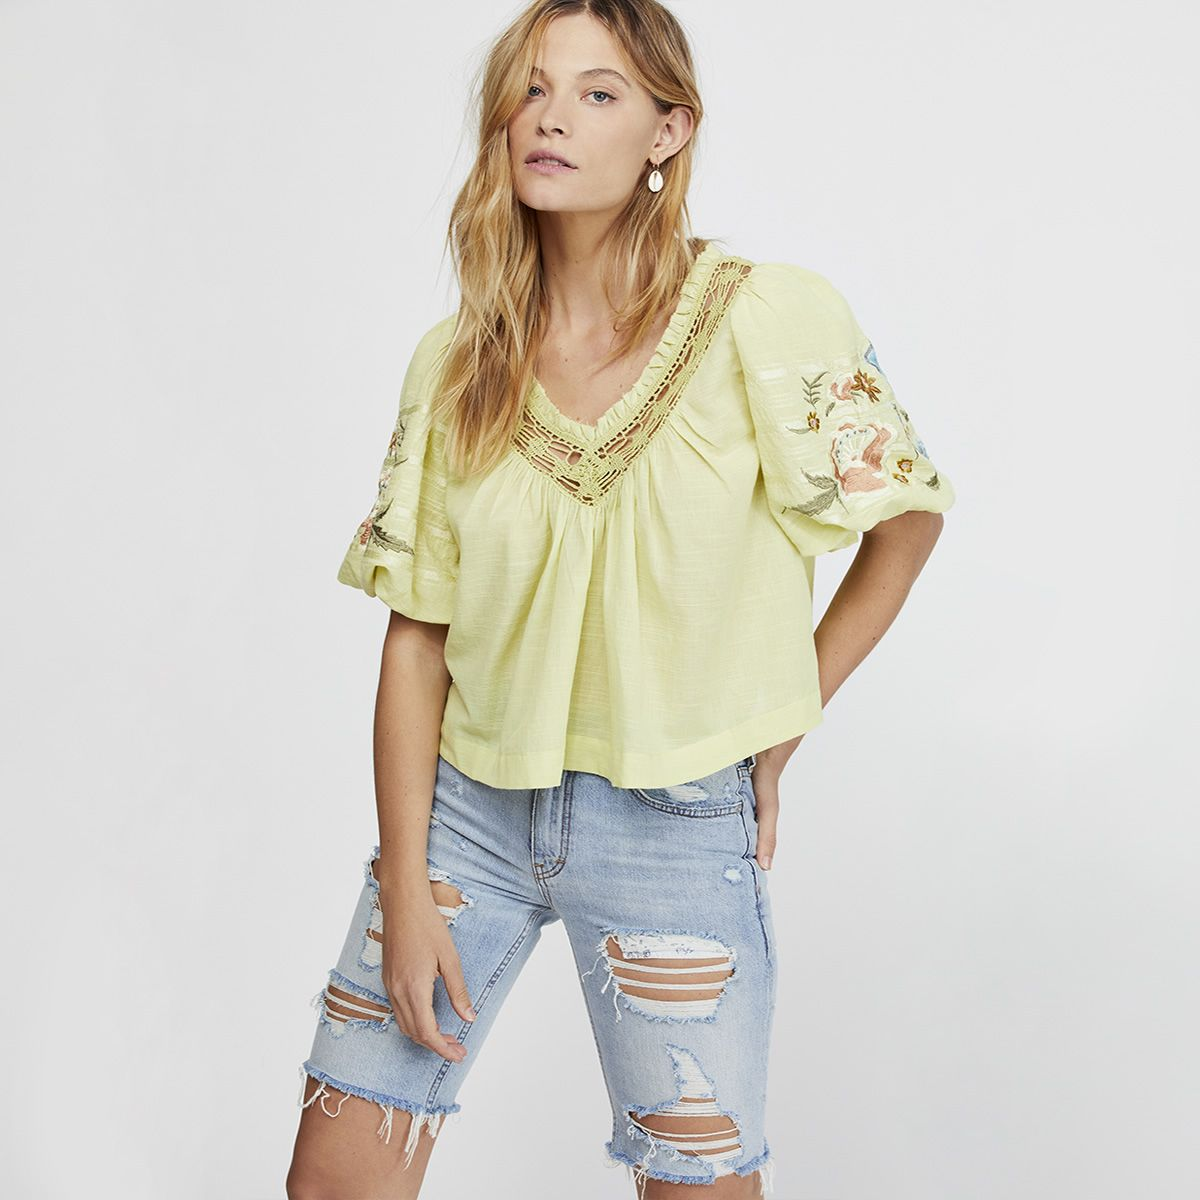 0c225e632f5 Free People Womens Tops - Macy's